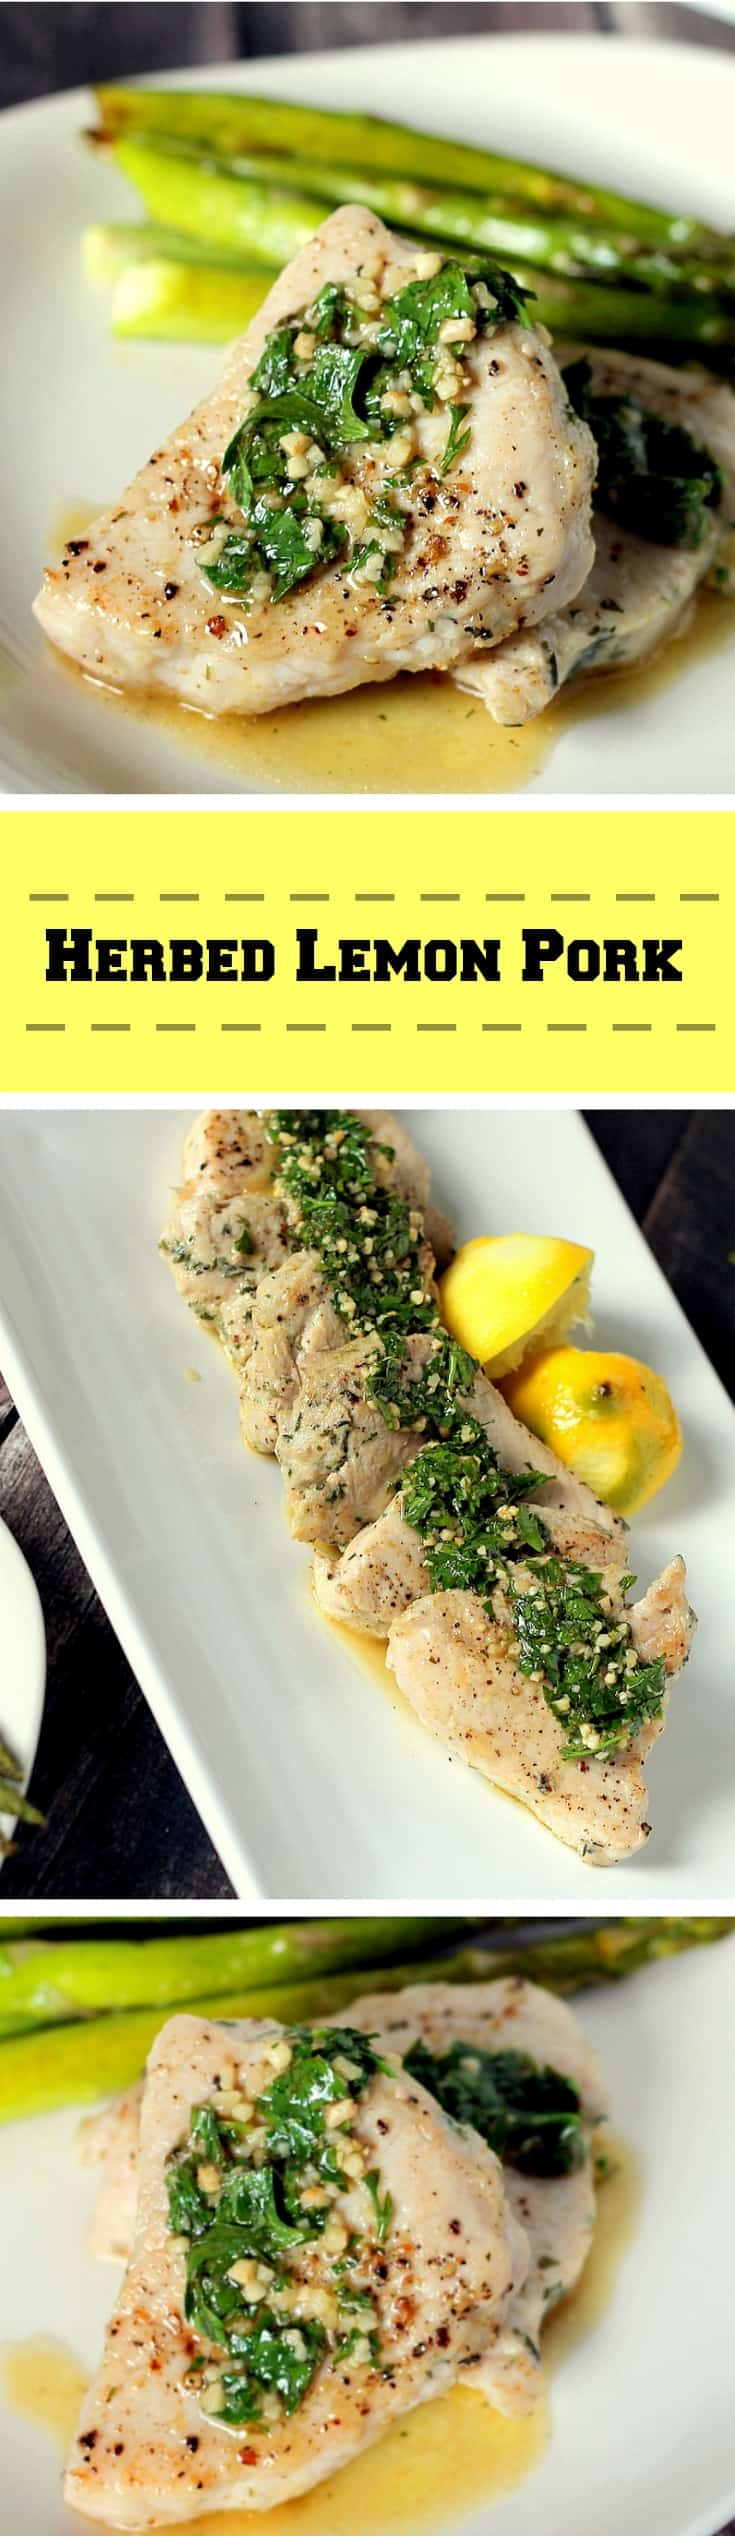 herbed lemon pork recipe